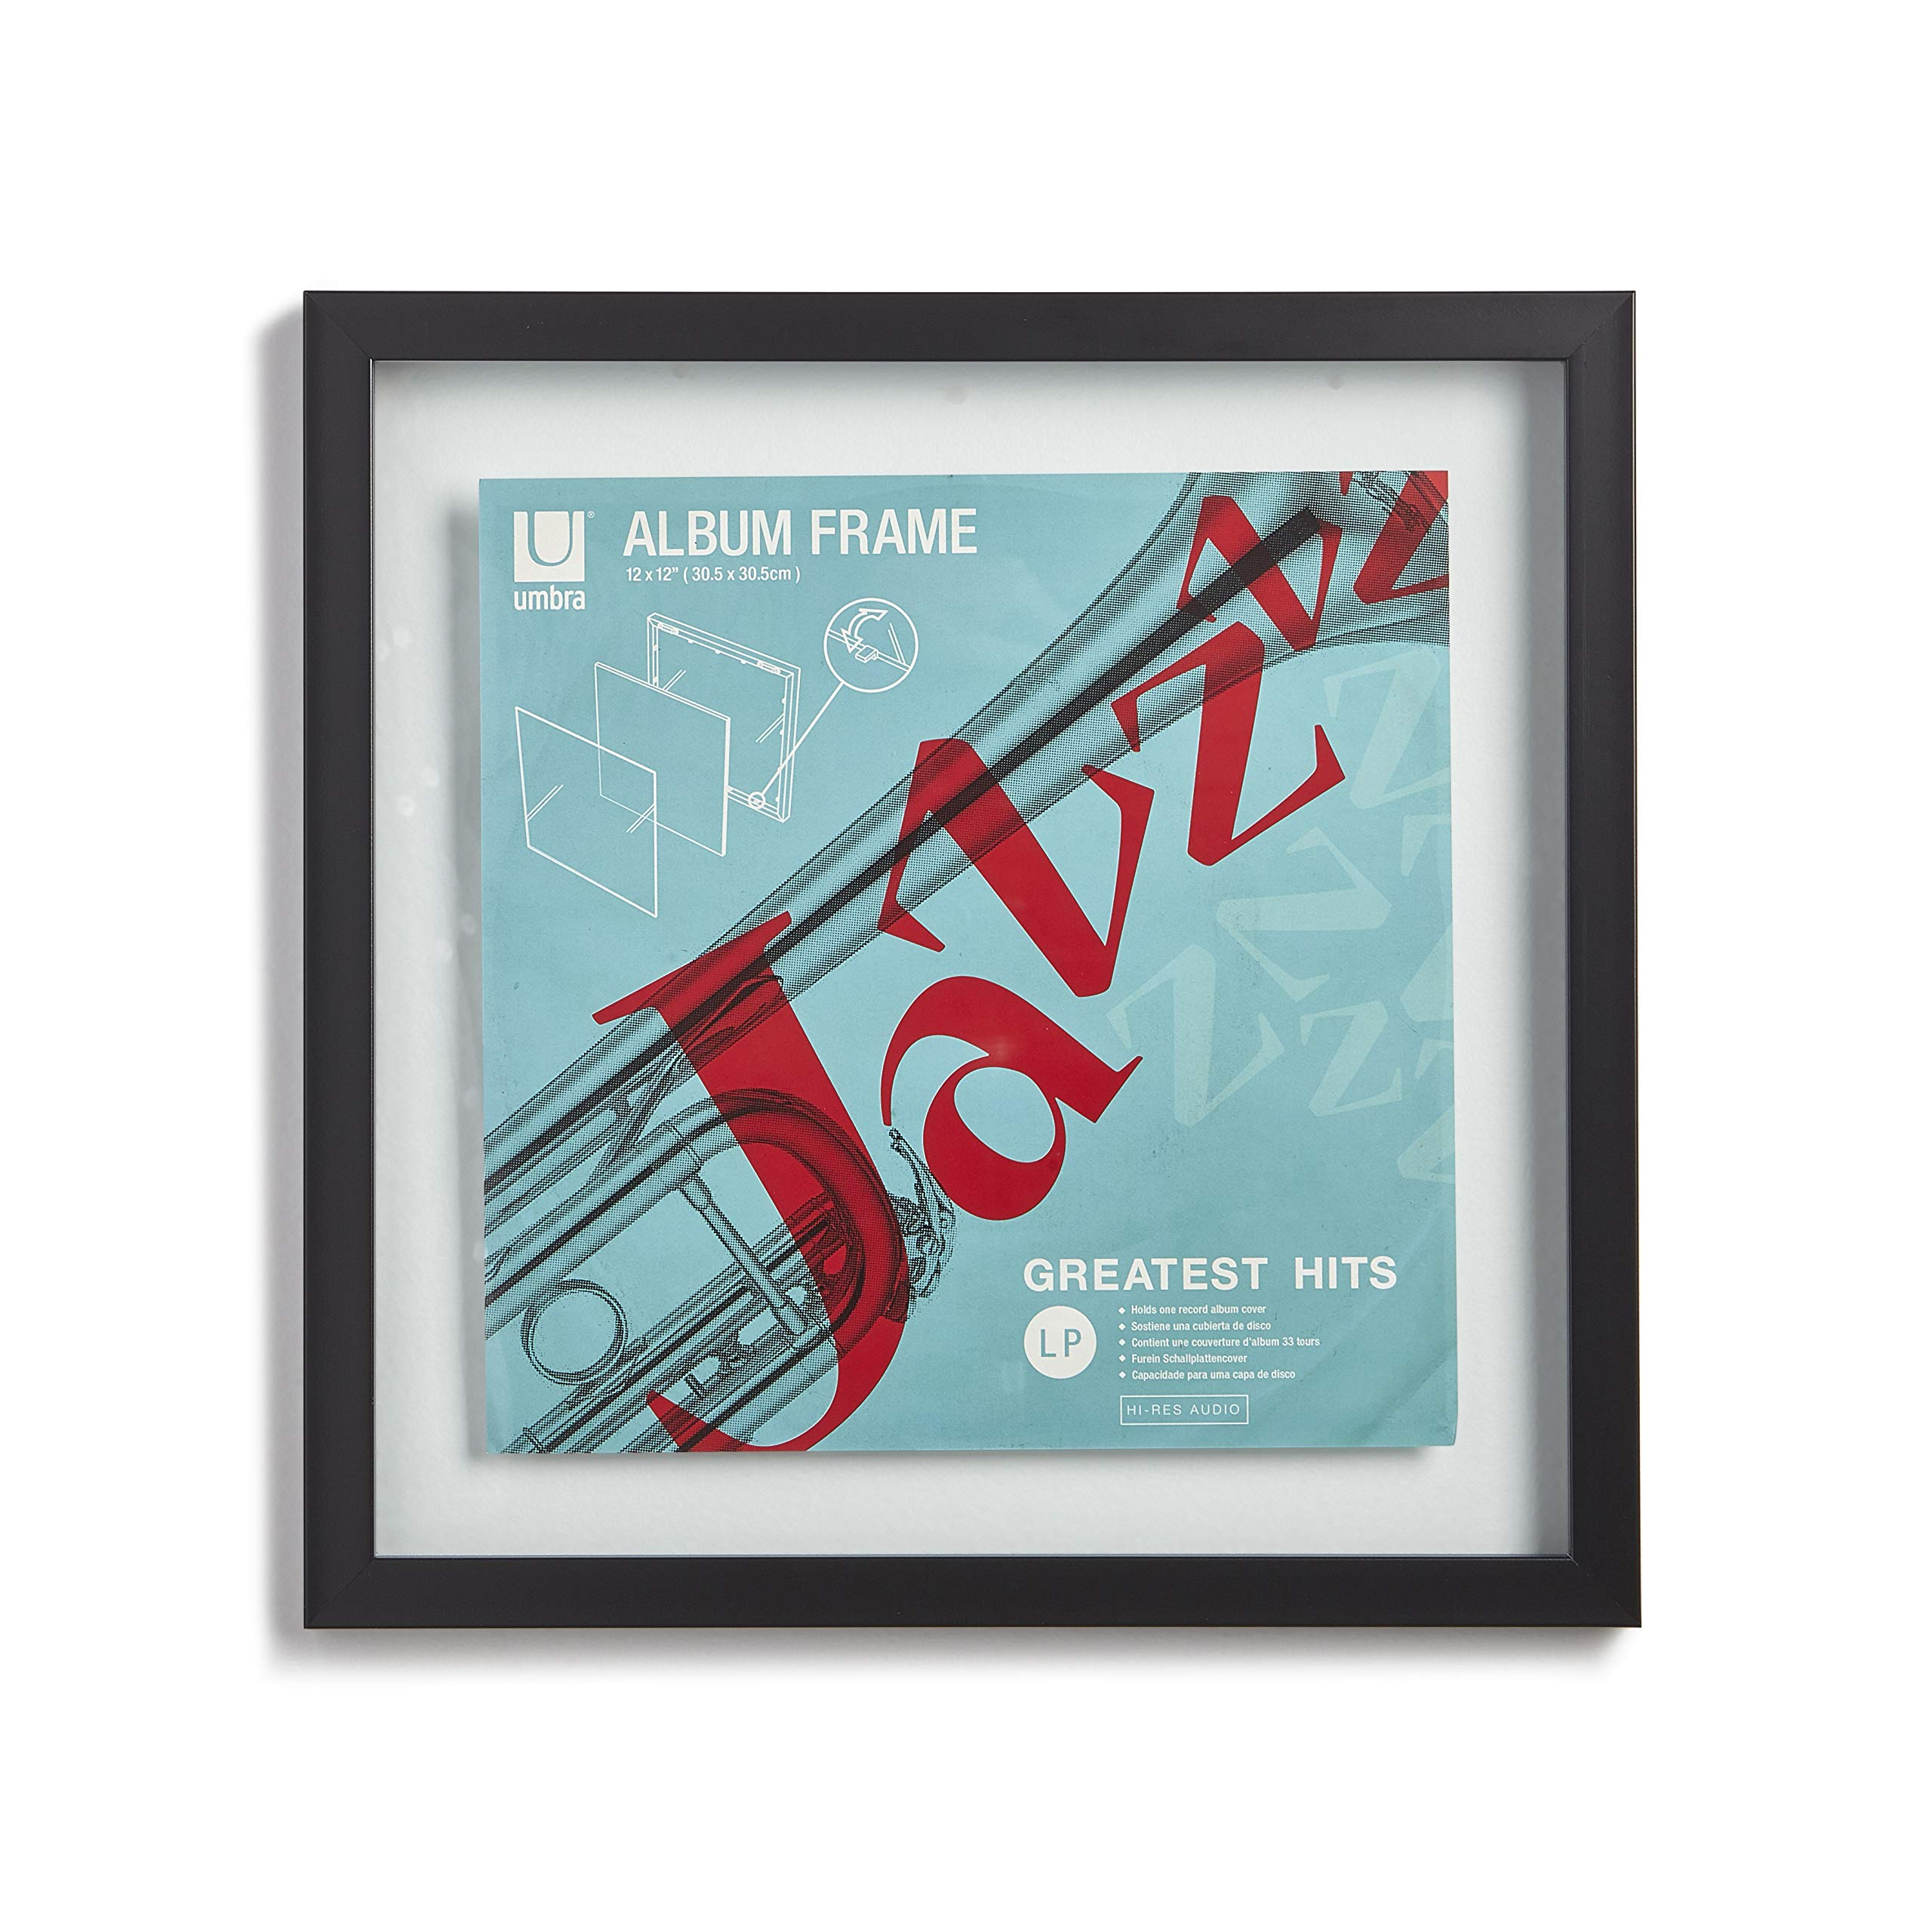 Umbra Record Album Frame 14-1/2x14-1/2-Inch, Modern Picture Frame Designed to Display a Floating 12-Inch by 12-Inch Album Cover by Umbra (Image #13)